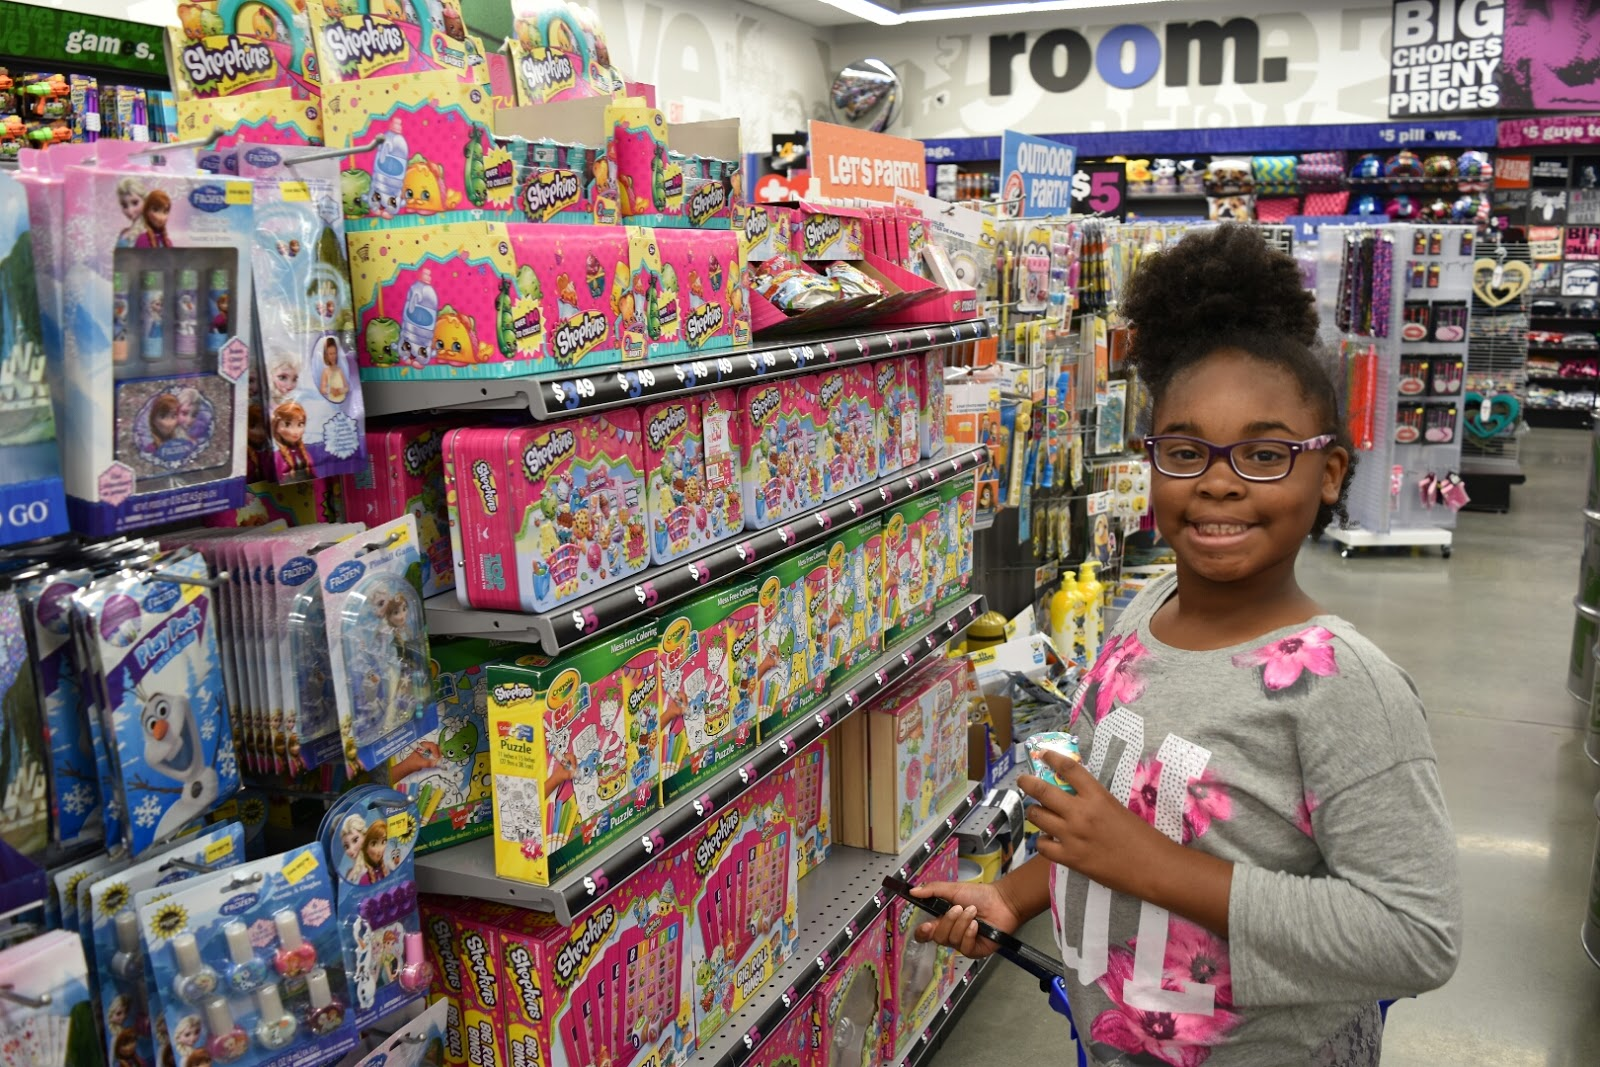 """Five Below deconstructs and co-engineers its products alongside manufacturers to offer exciting products below $5, and we expect the company's growing scale to create further sourcing and."